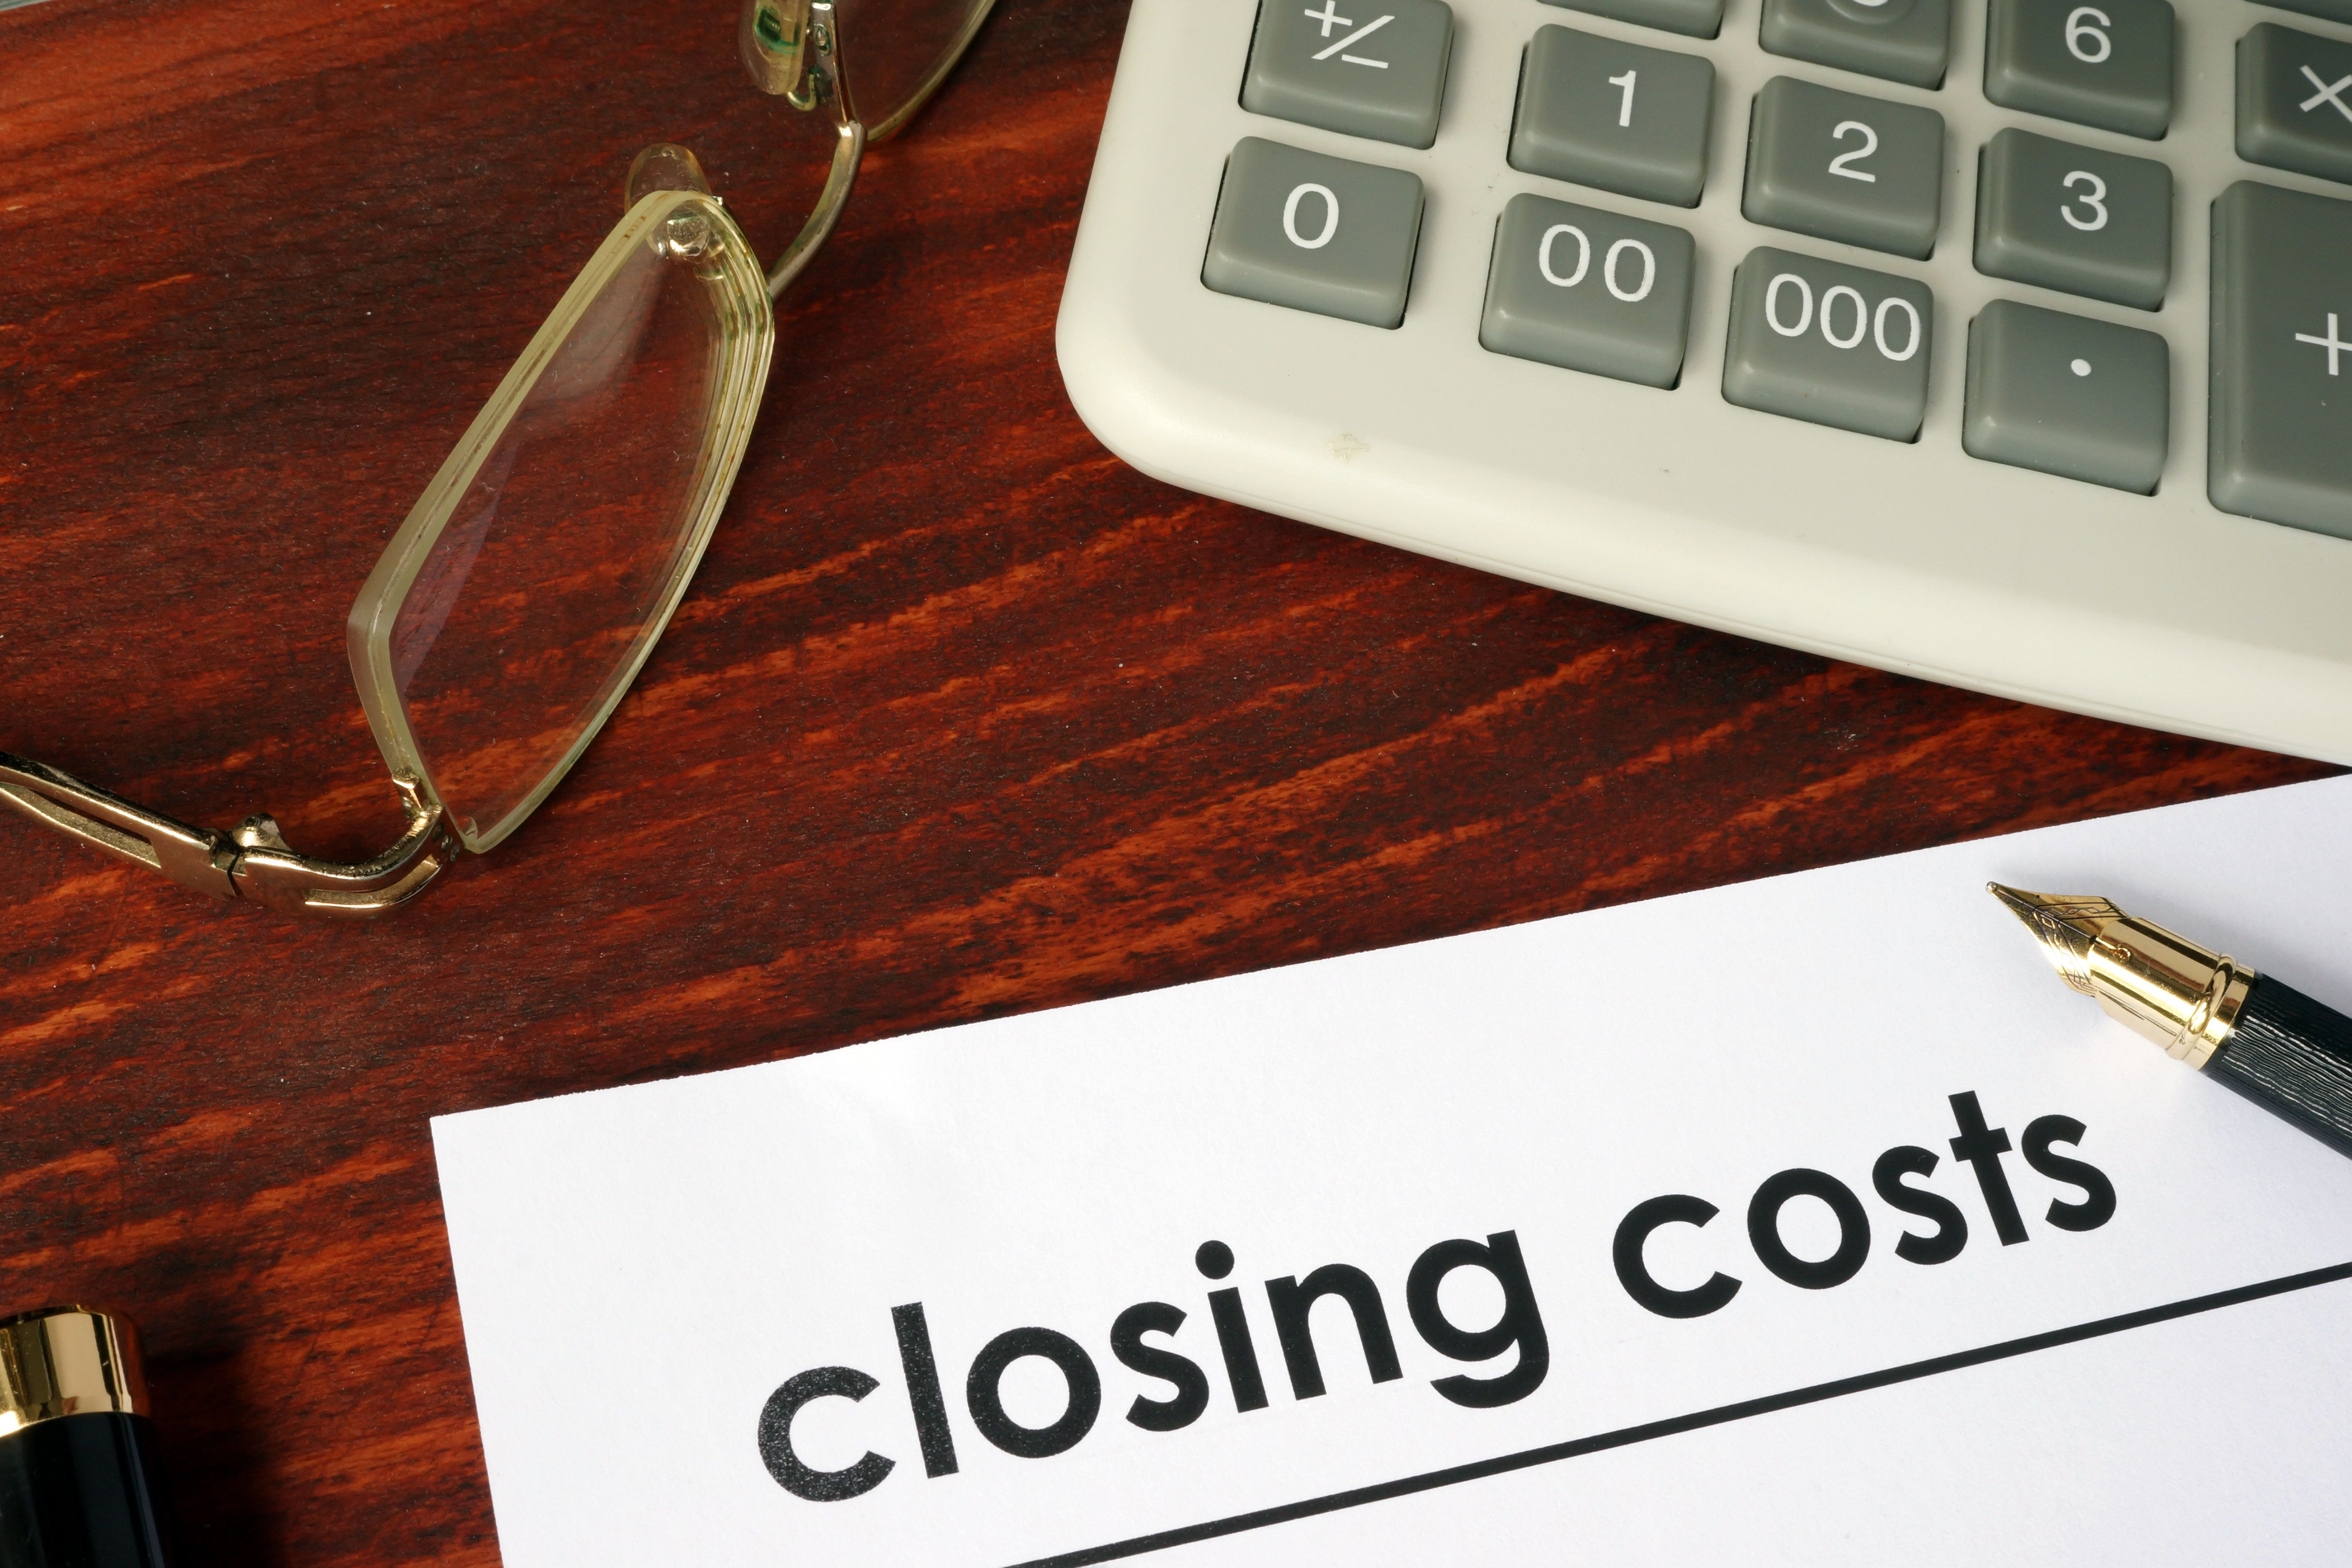 Closing costs are a major part of the home-buying process, but a lot of people don't know much about them.